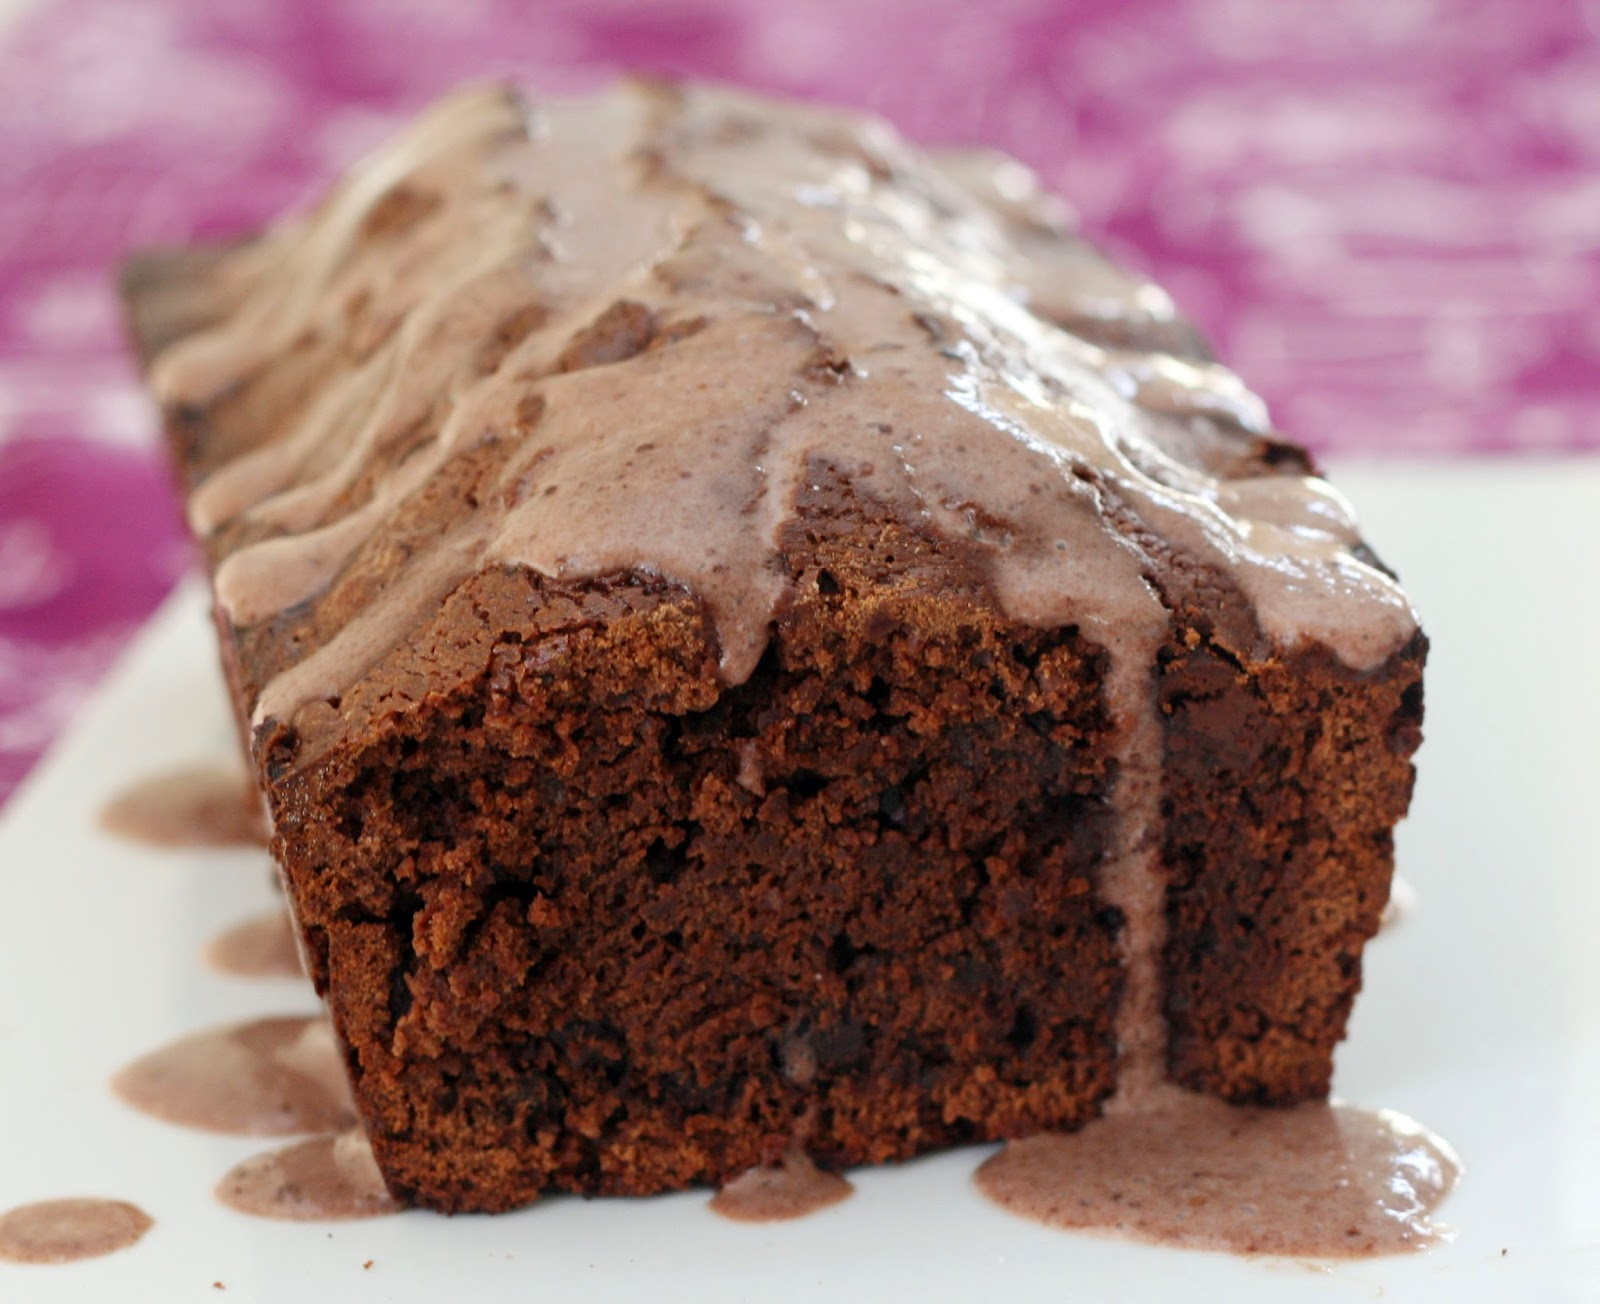 ... recipes by Rachel Rappaport: Chocolate-Chocolate Chip Buttermilk Cake